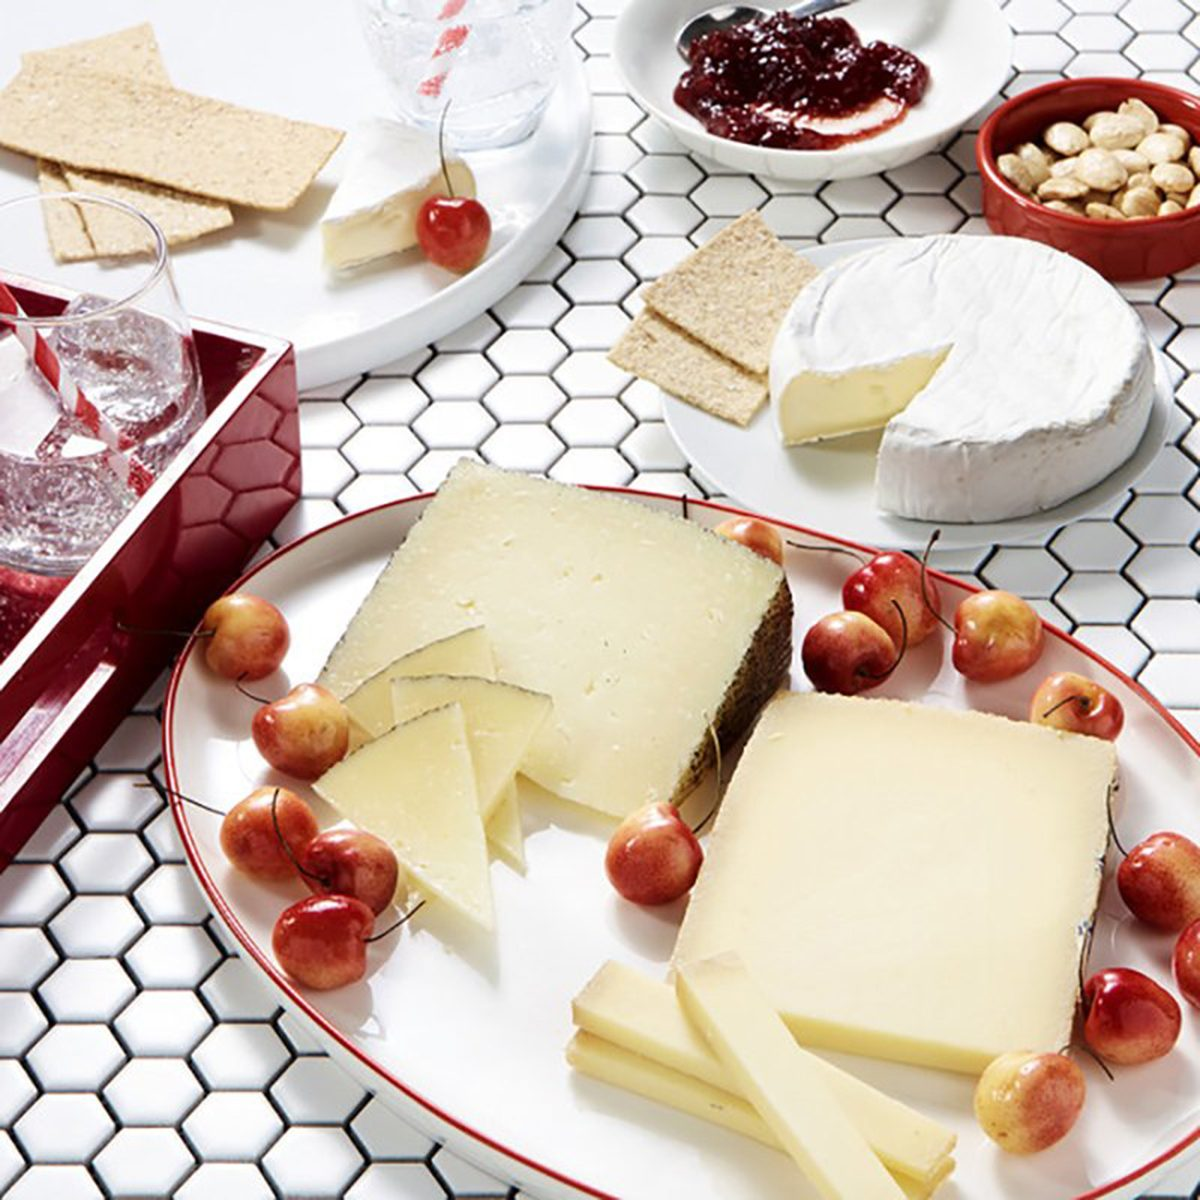 Greatest Hits by Murray's Cheese